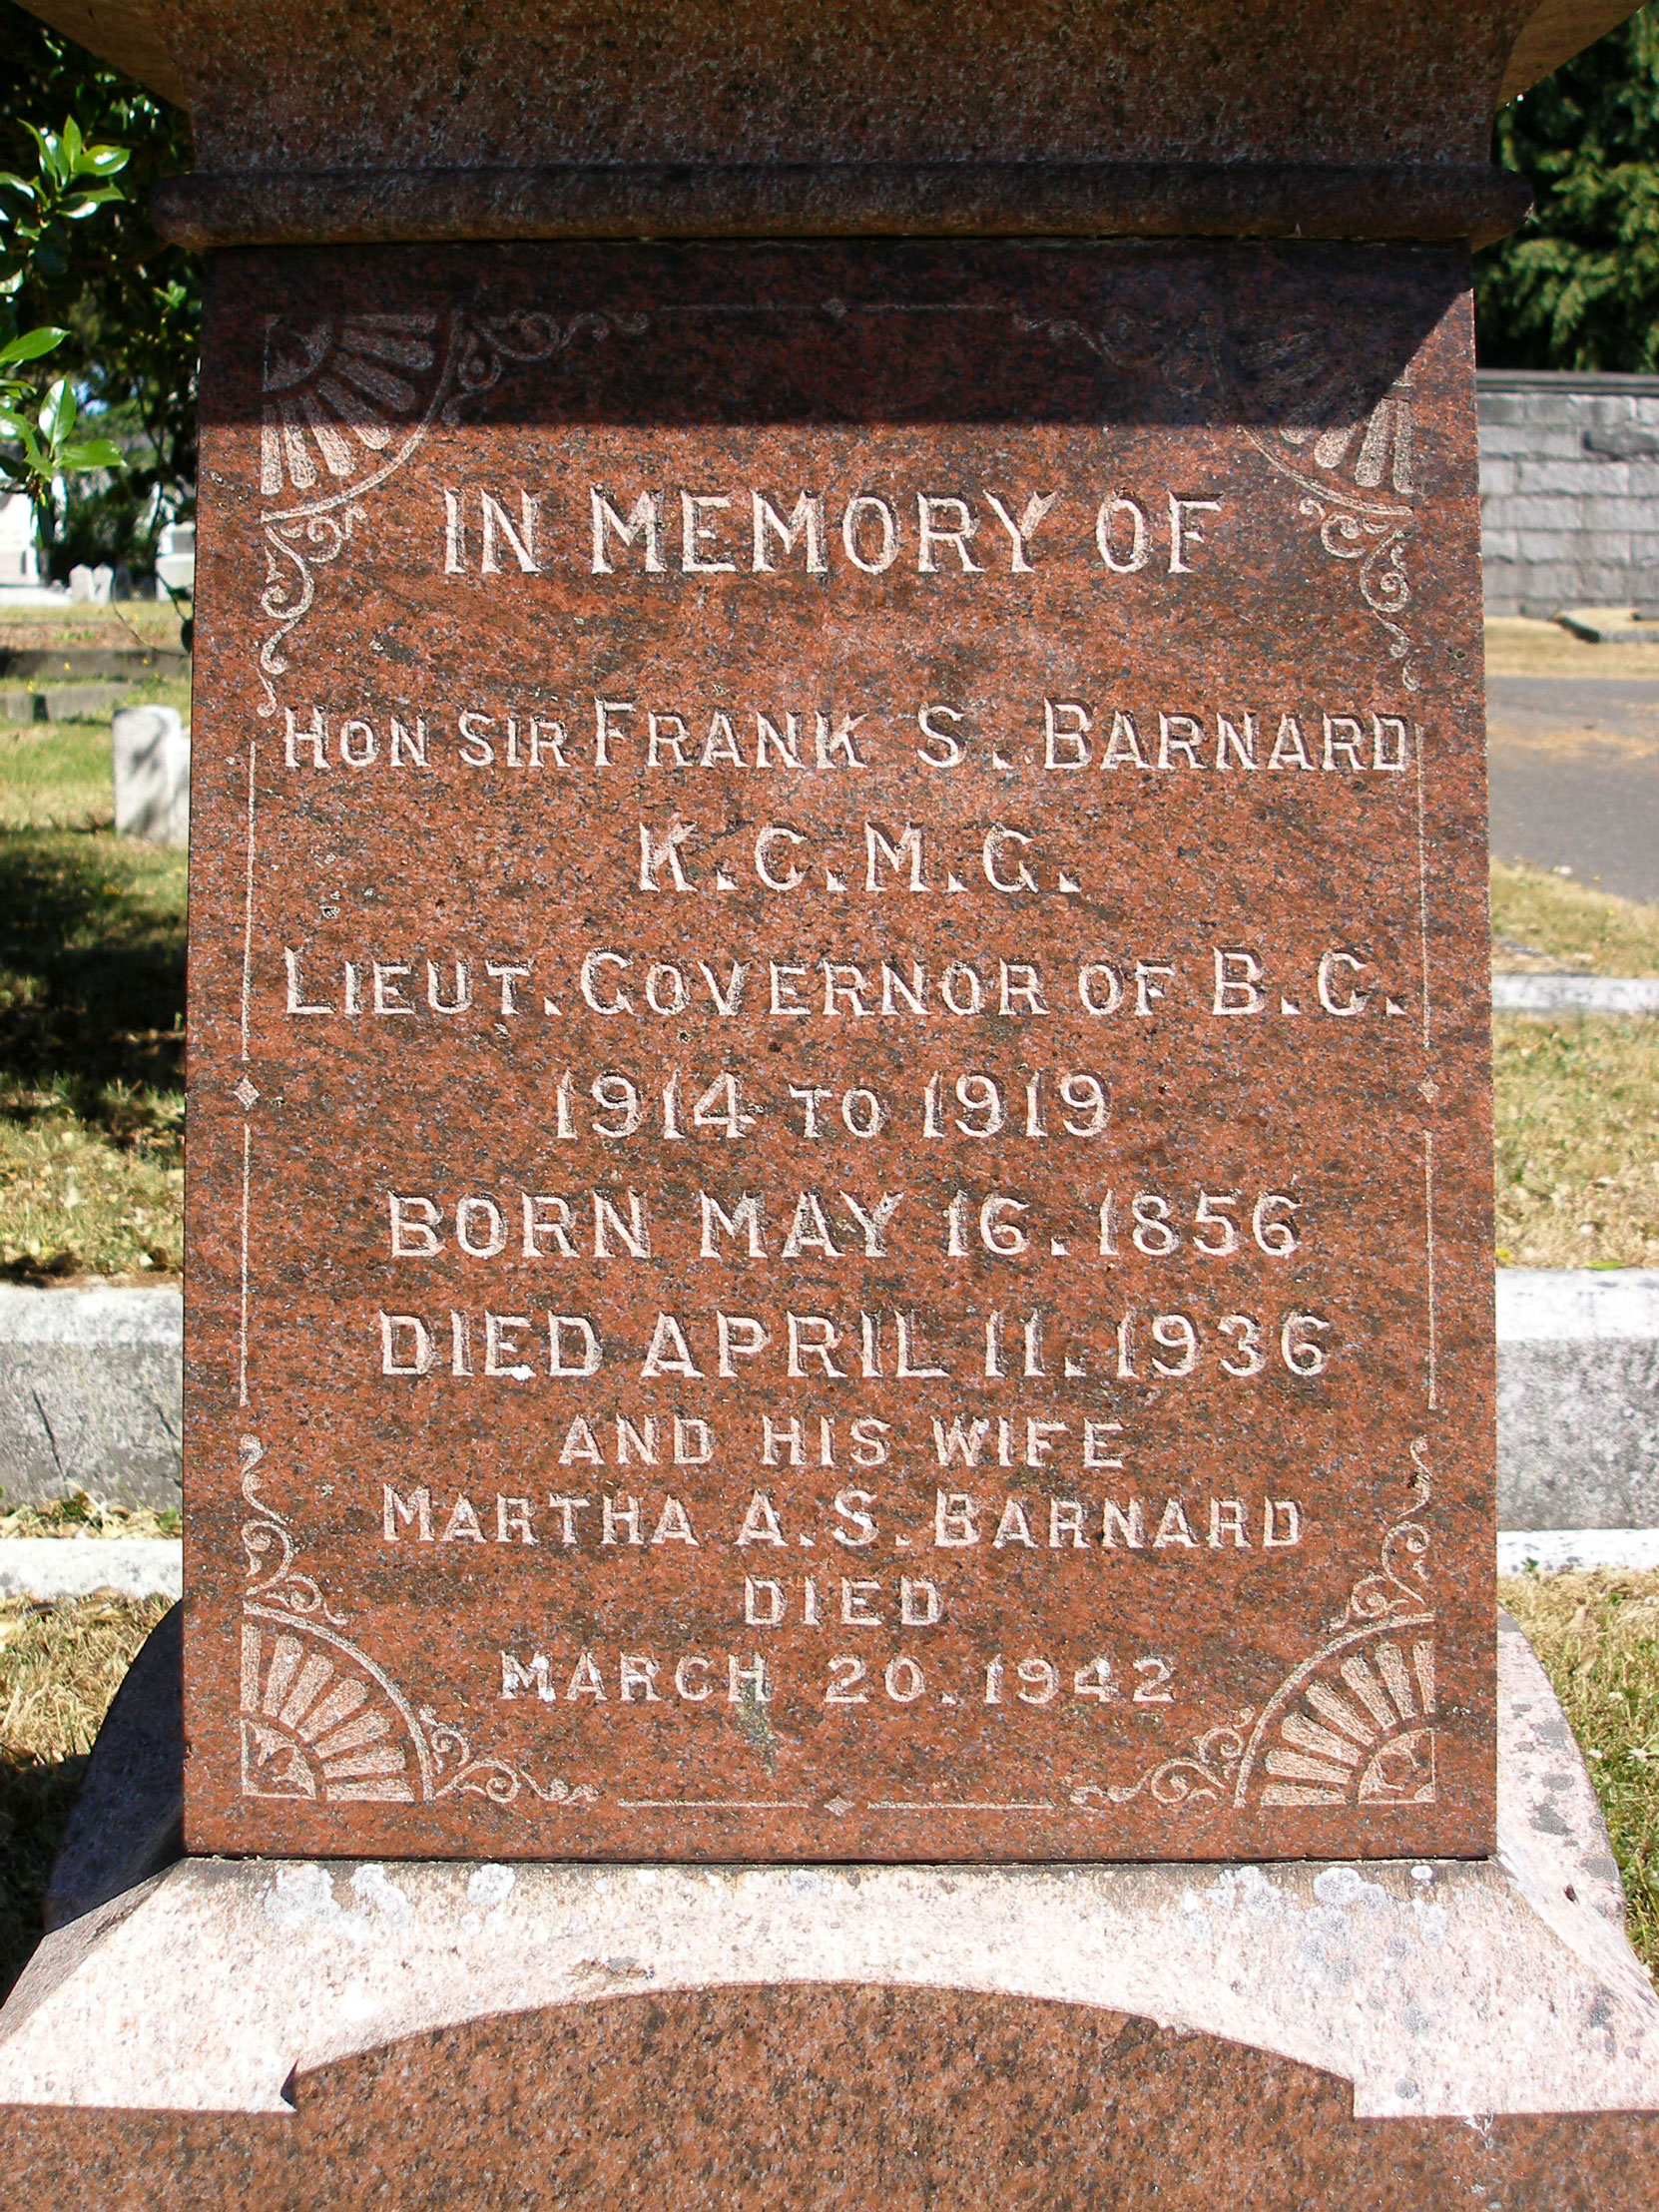 Sir Frank Stillman Barnard, grave inscription, Ross Bay Cemetery, Victoria, B.C. (photo by Mark Anderson)